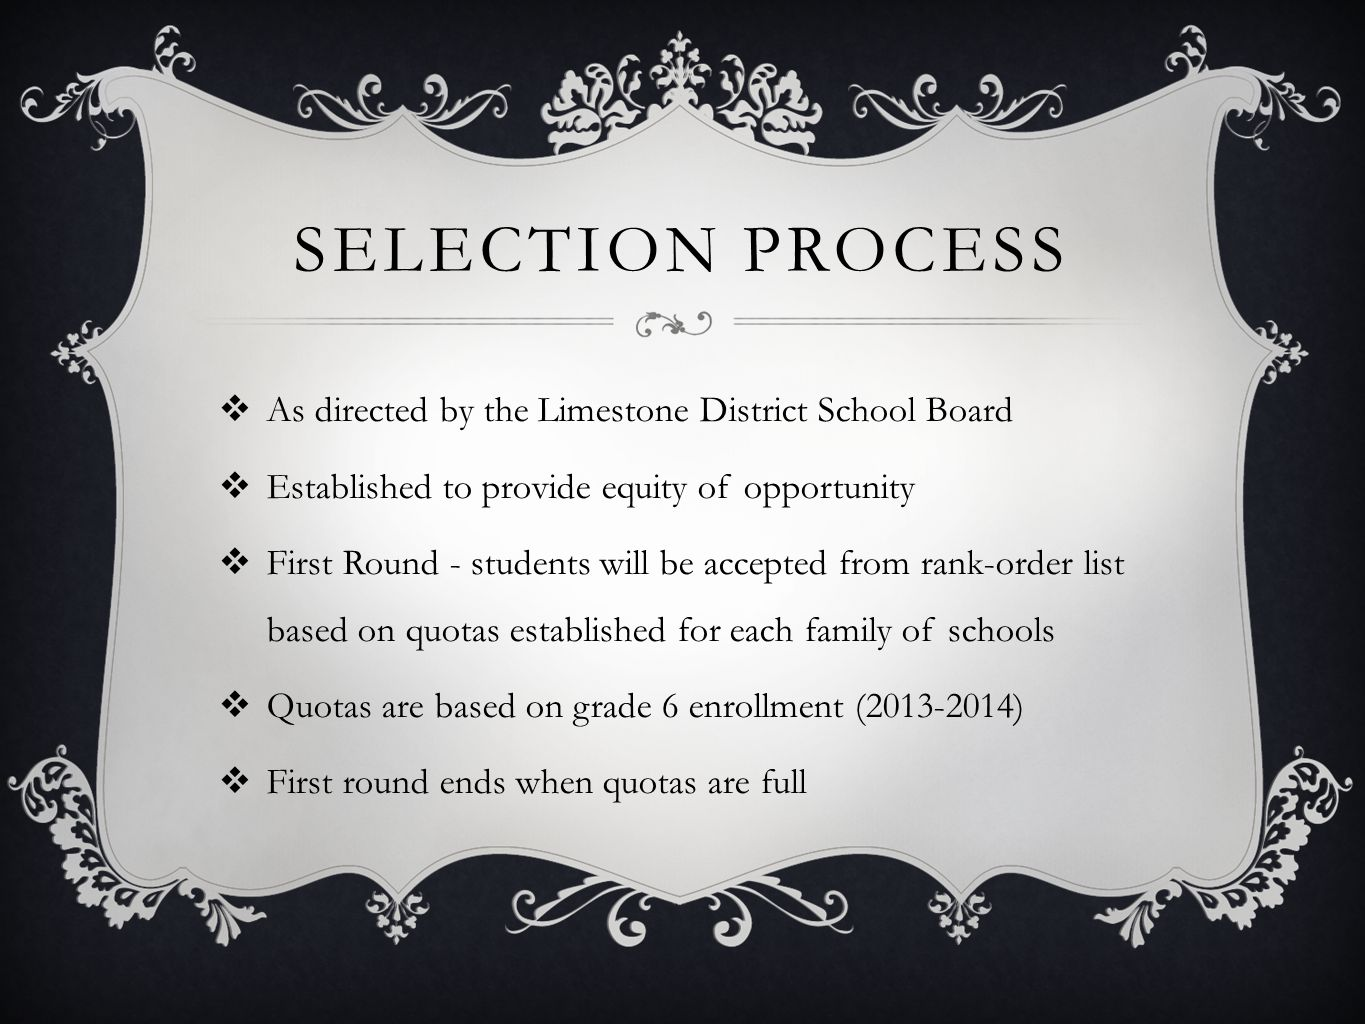 Selection process As directed by the Limestone District School Board